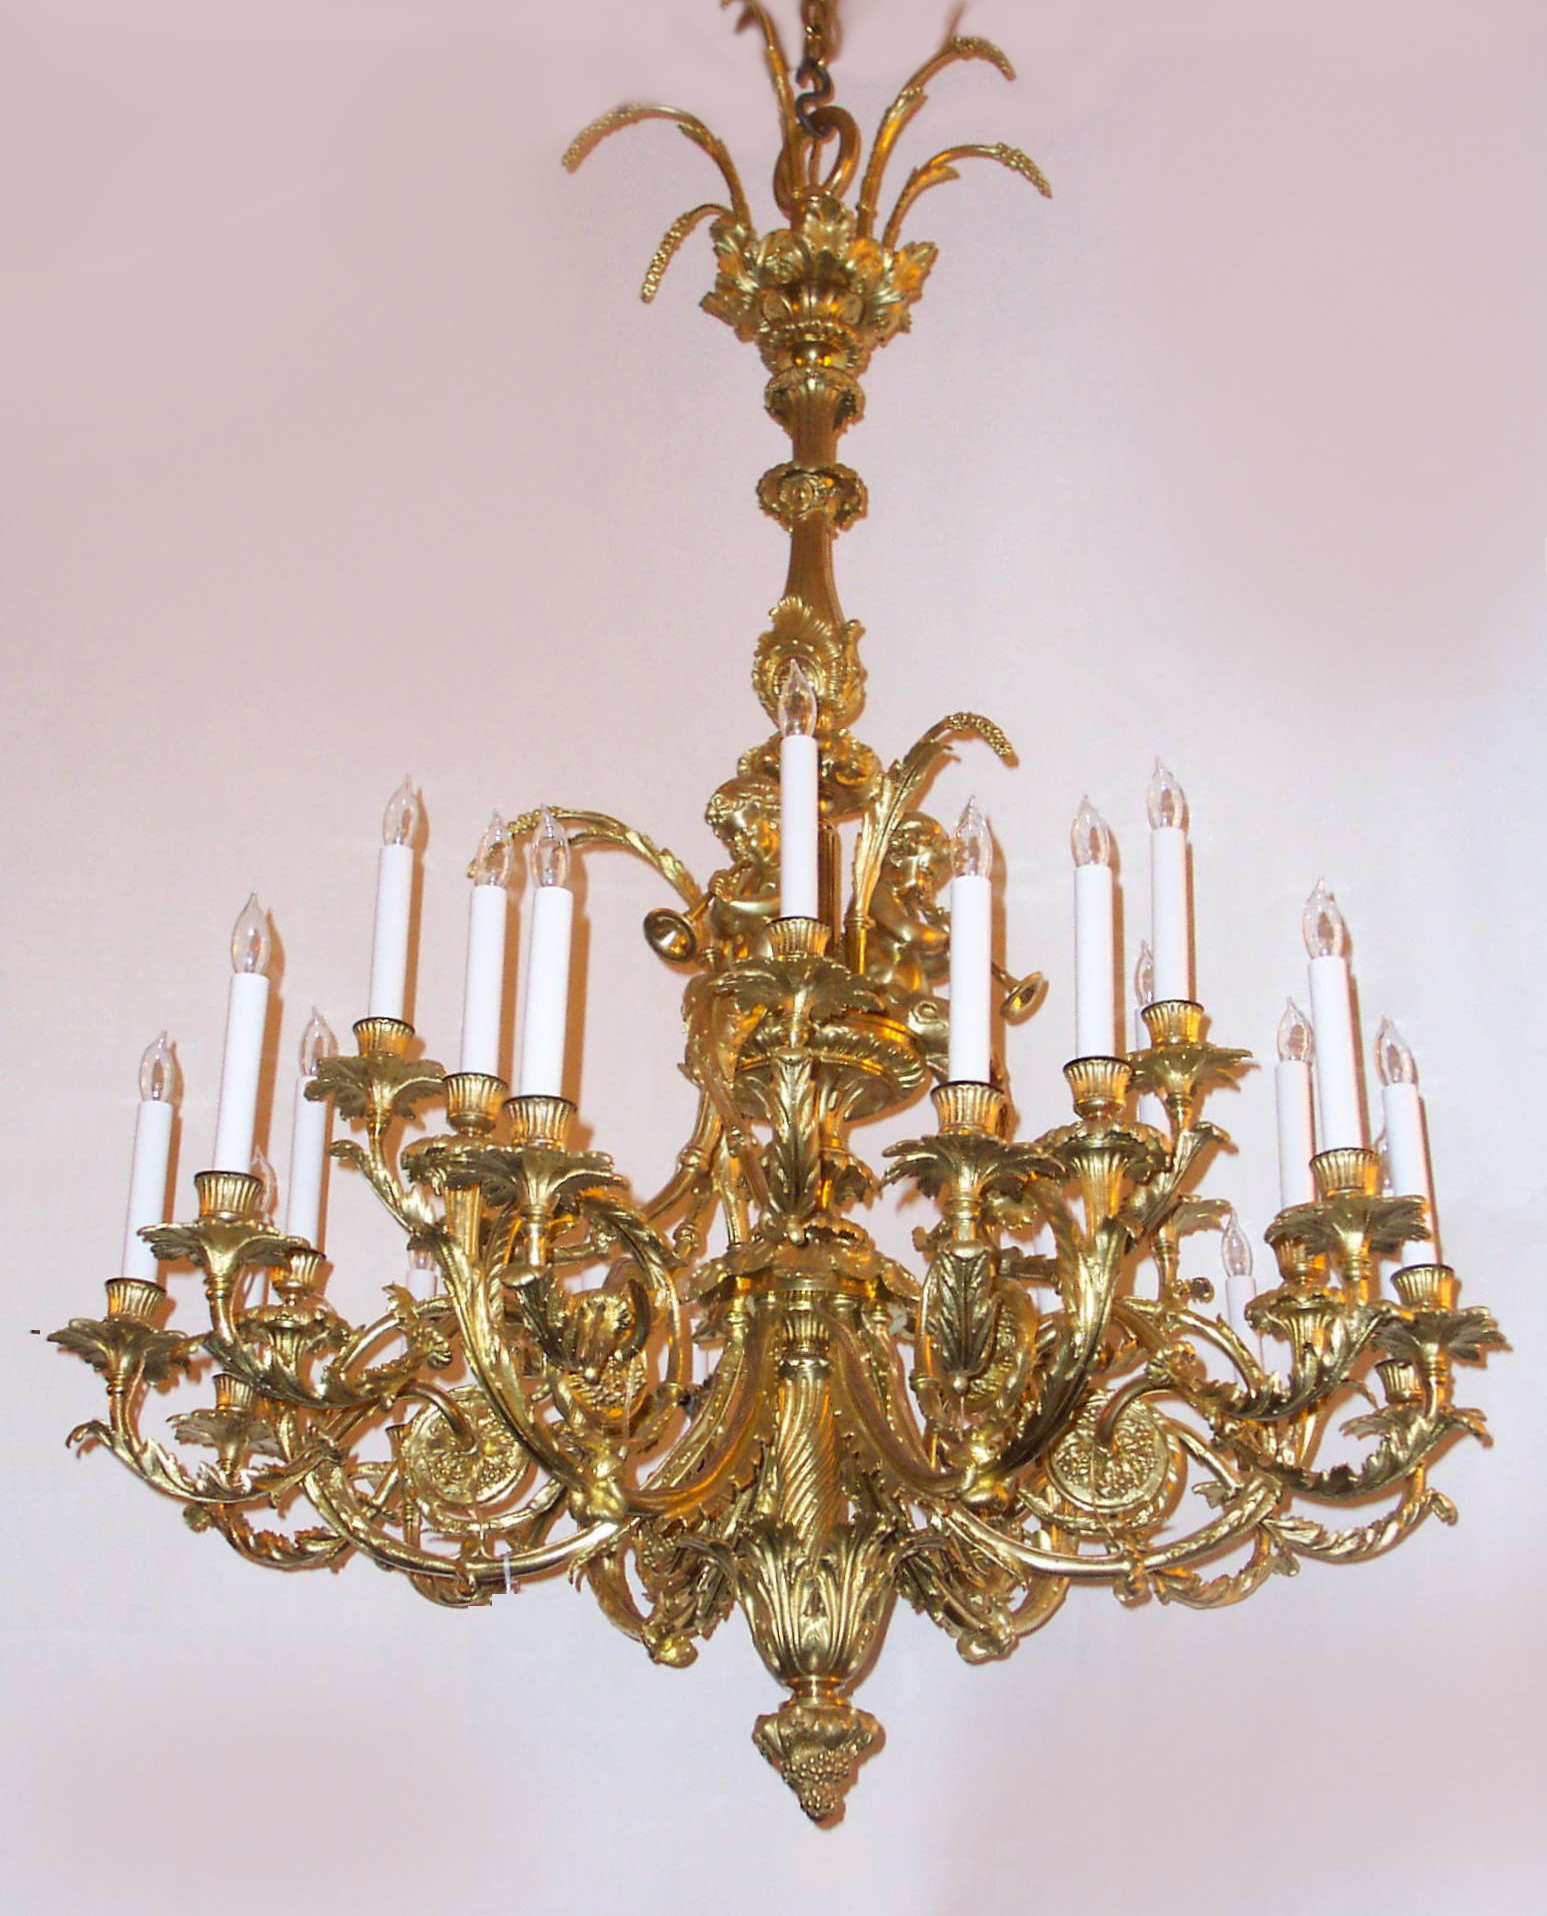 Antique french louis 16th gold bronze marie antoinette chandelier chb17 for sale antiques - Chandeliers on sale online ...